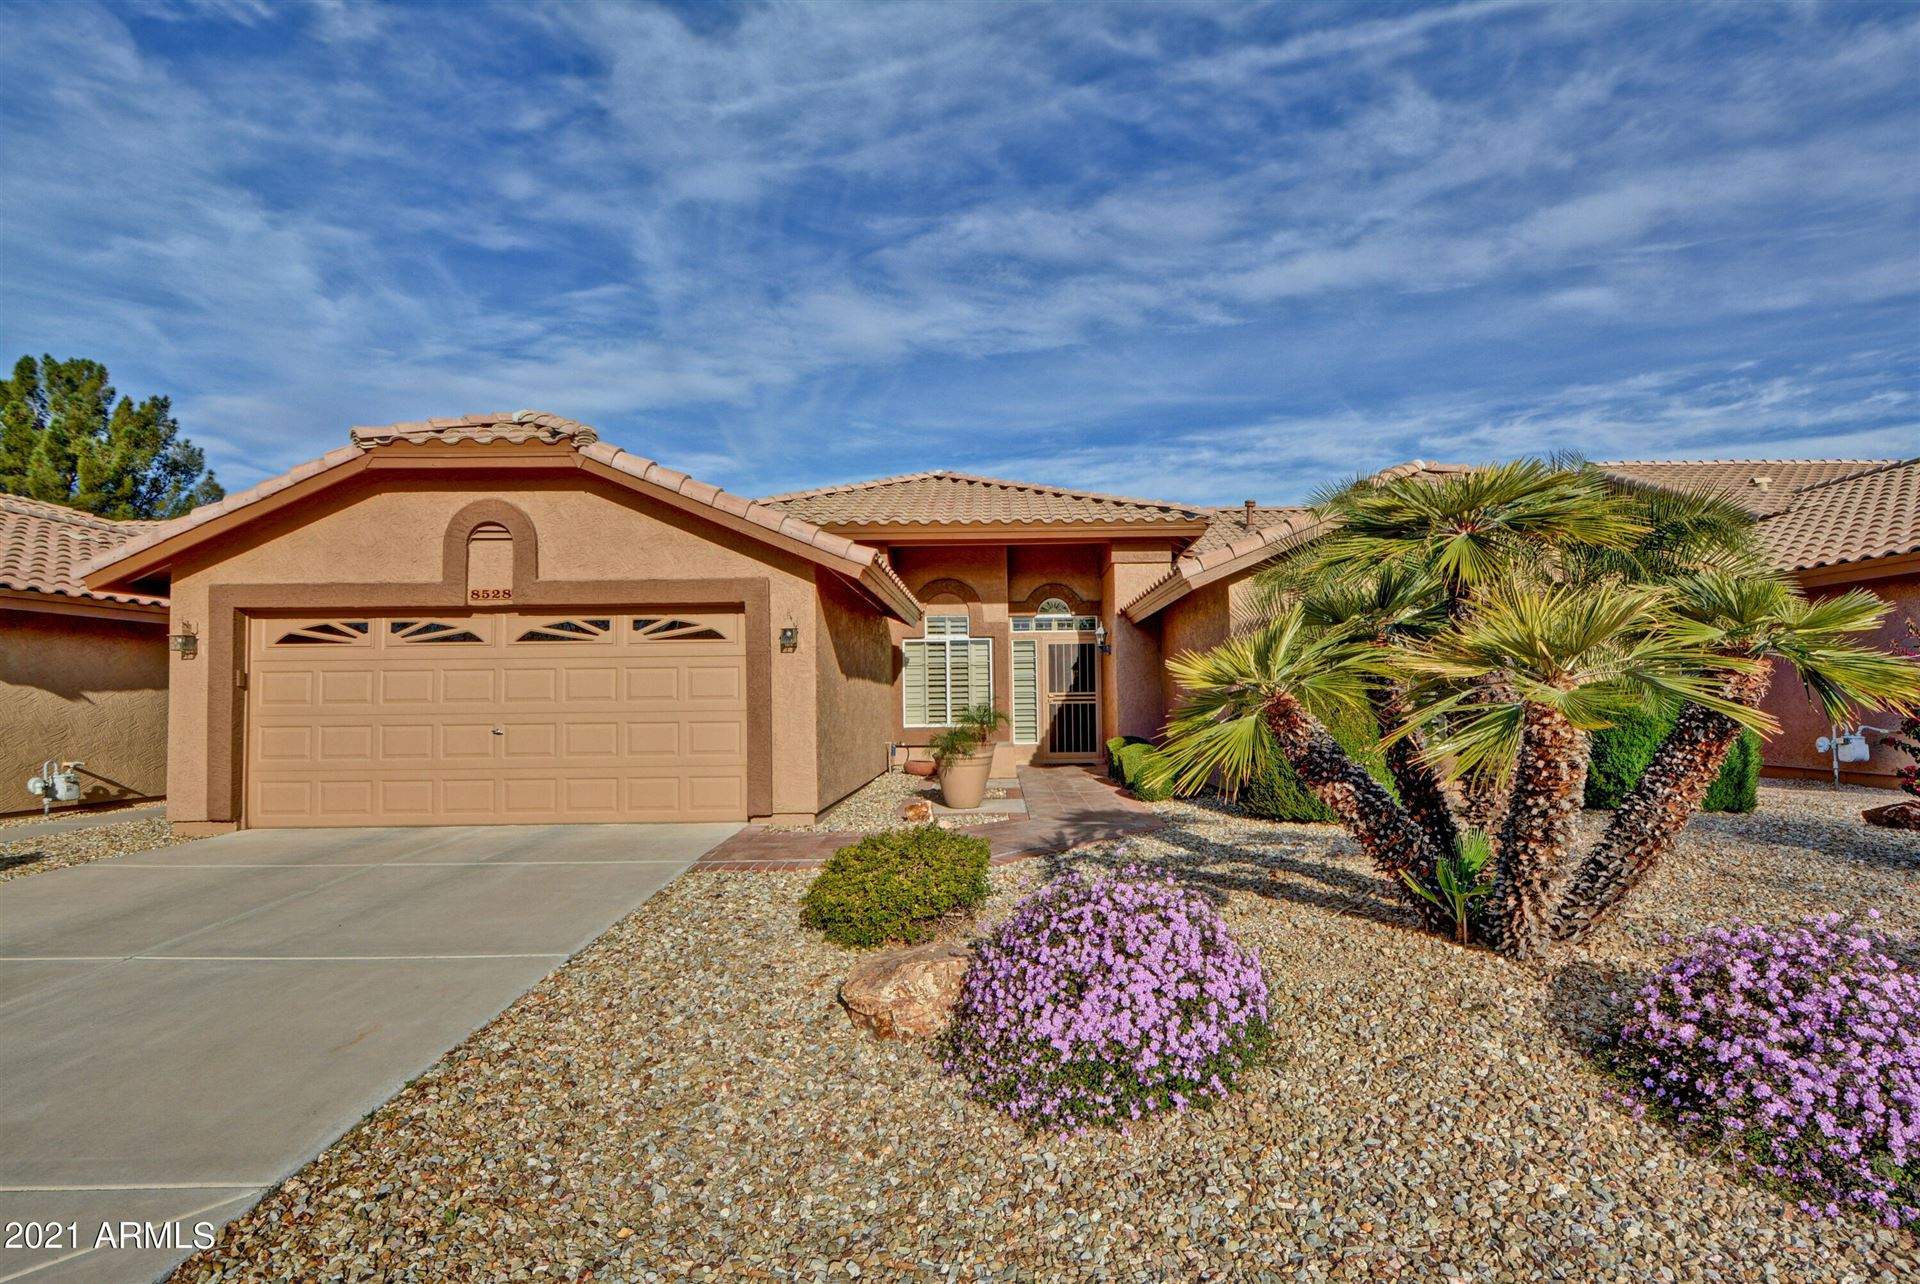 Photo of 8528 W WESCOTT Drive, Peoria, AZ 85382 (MLS # 6200534)